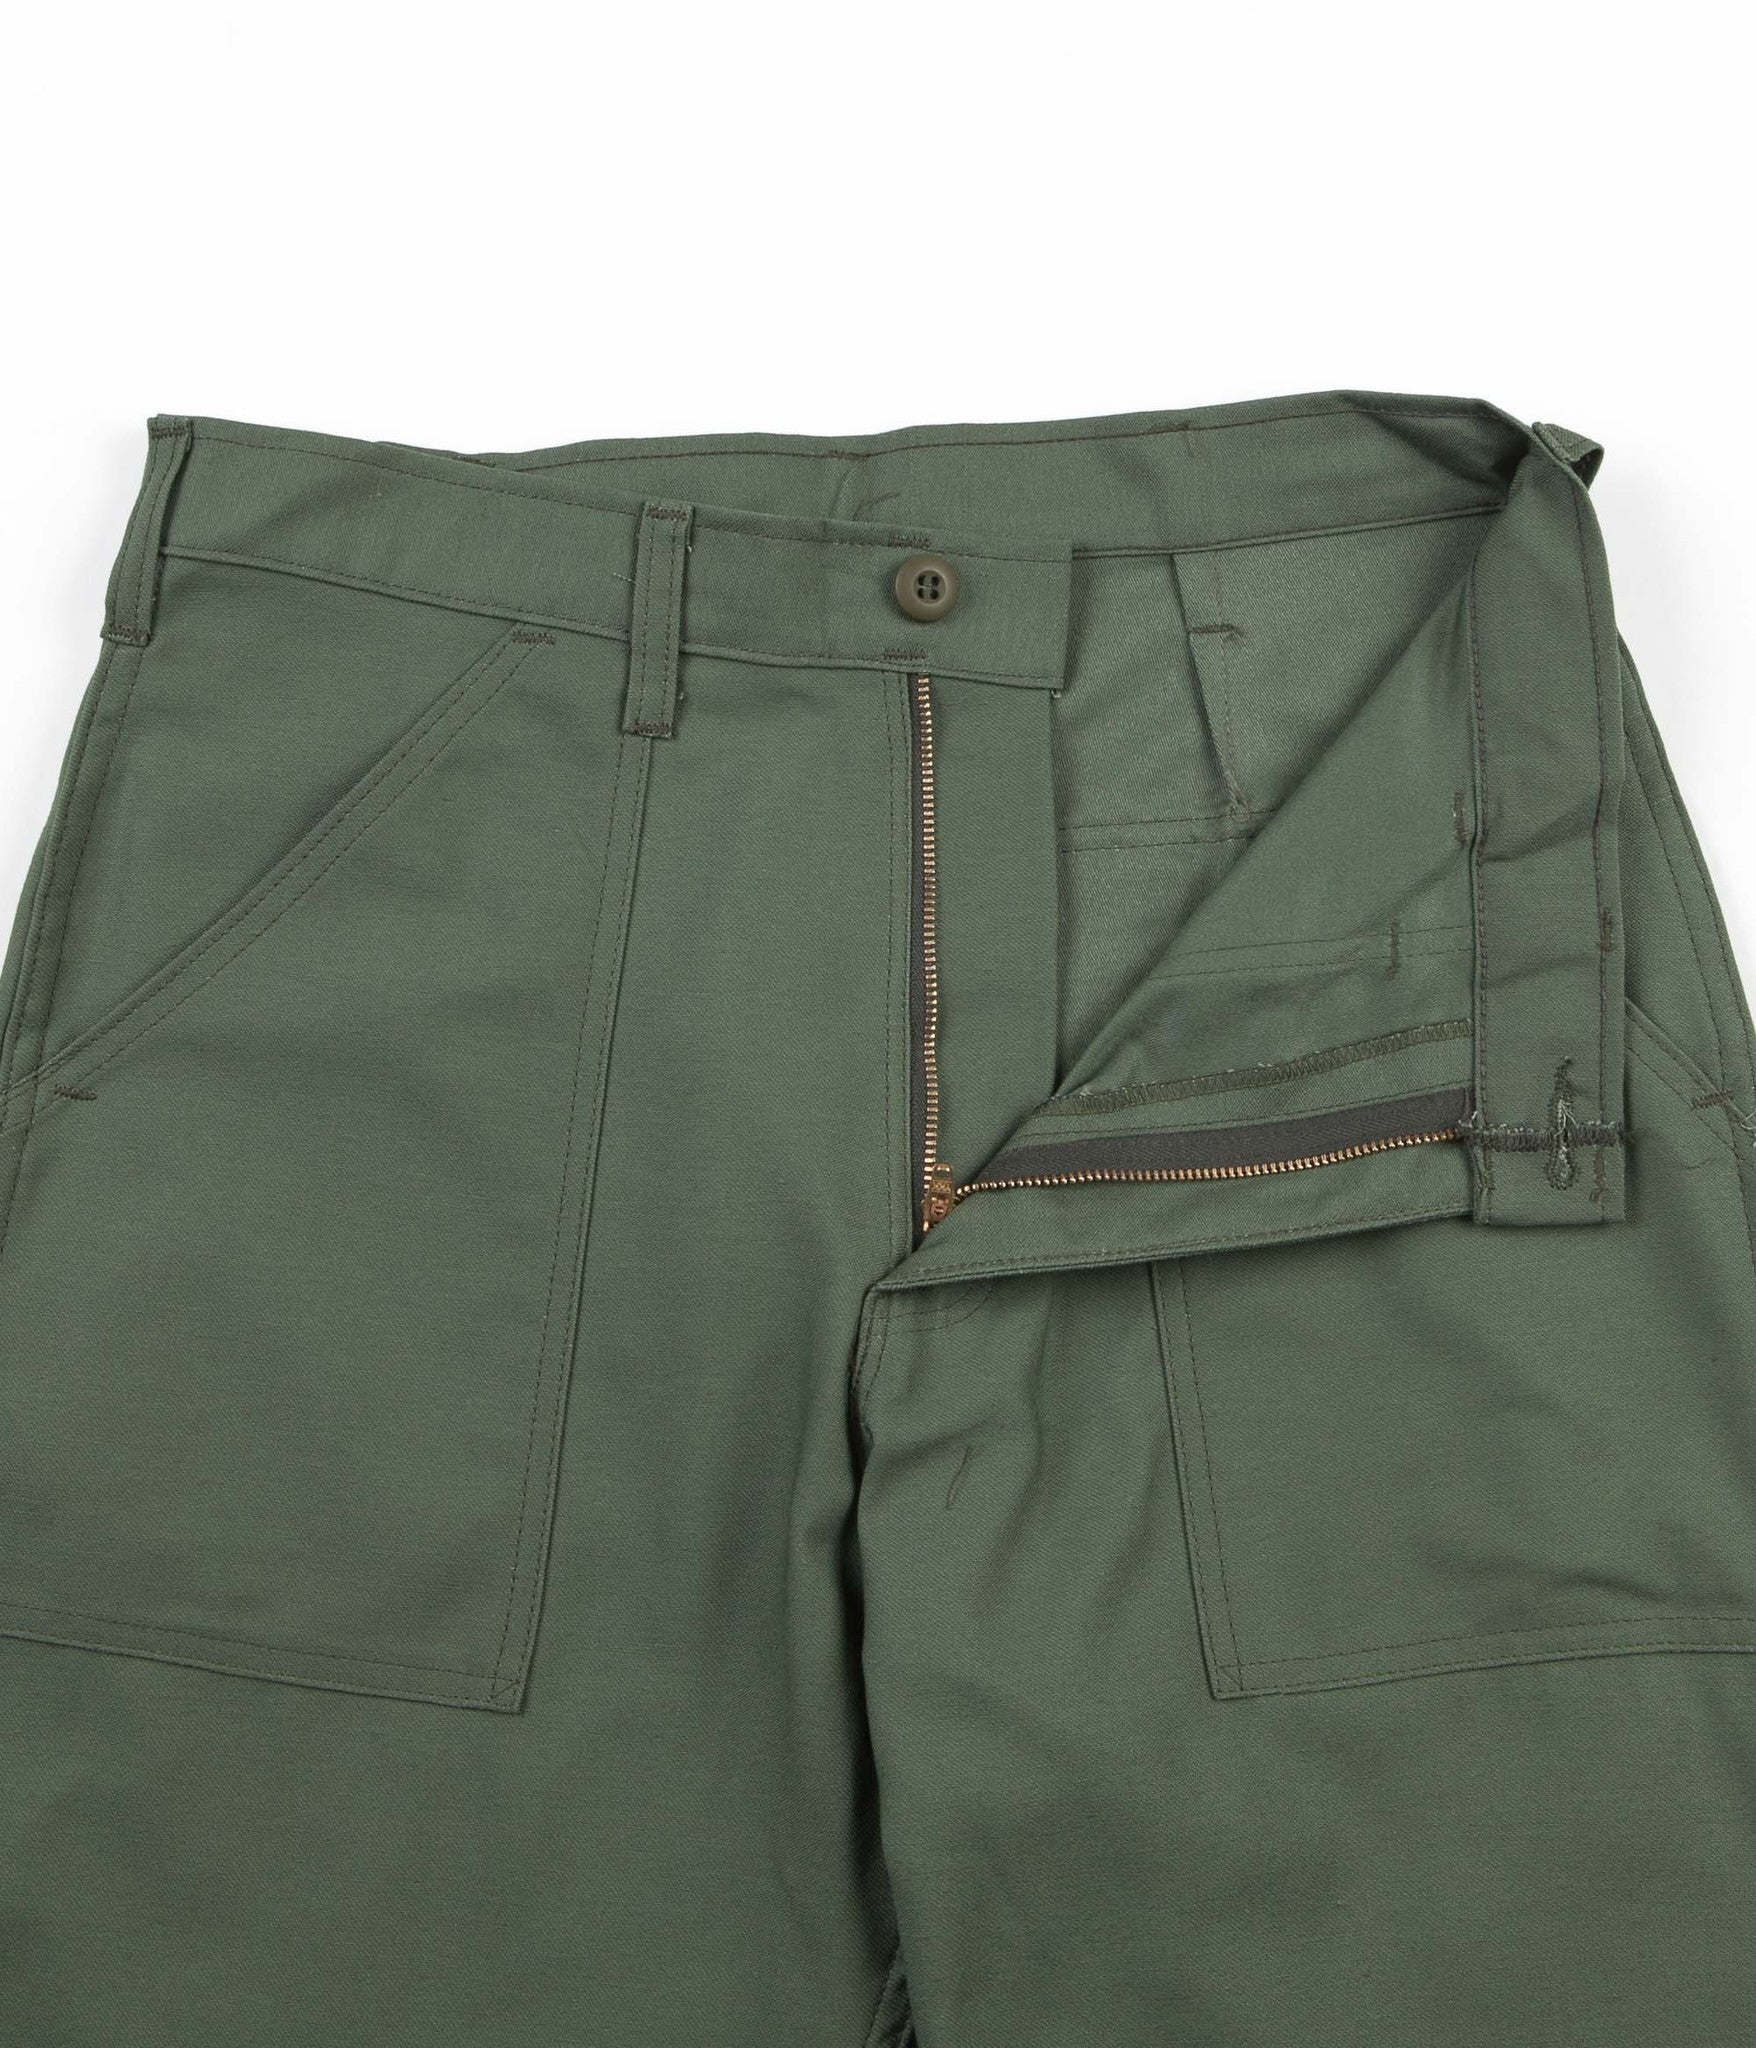 Stan Ray Taper Fit 4 Pocket Fatigue Trousers - Olive Sateen